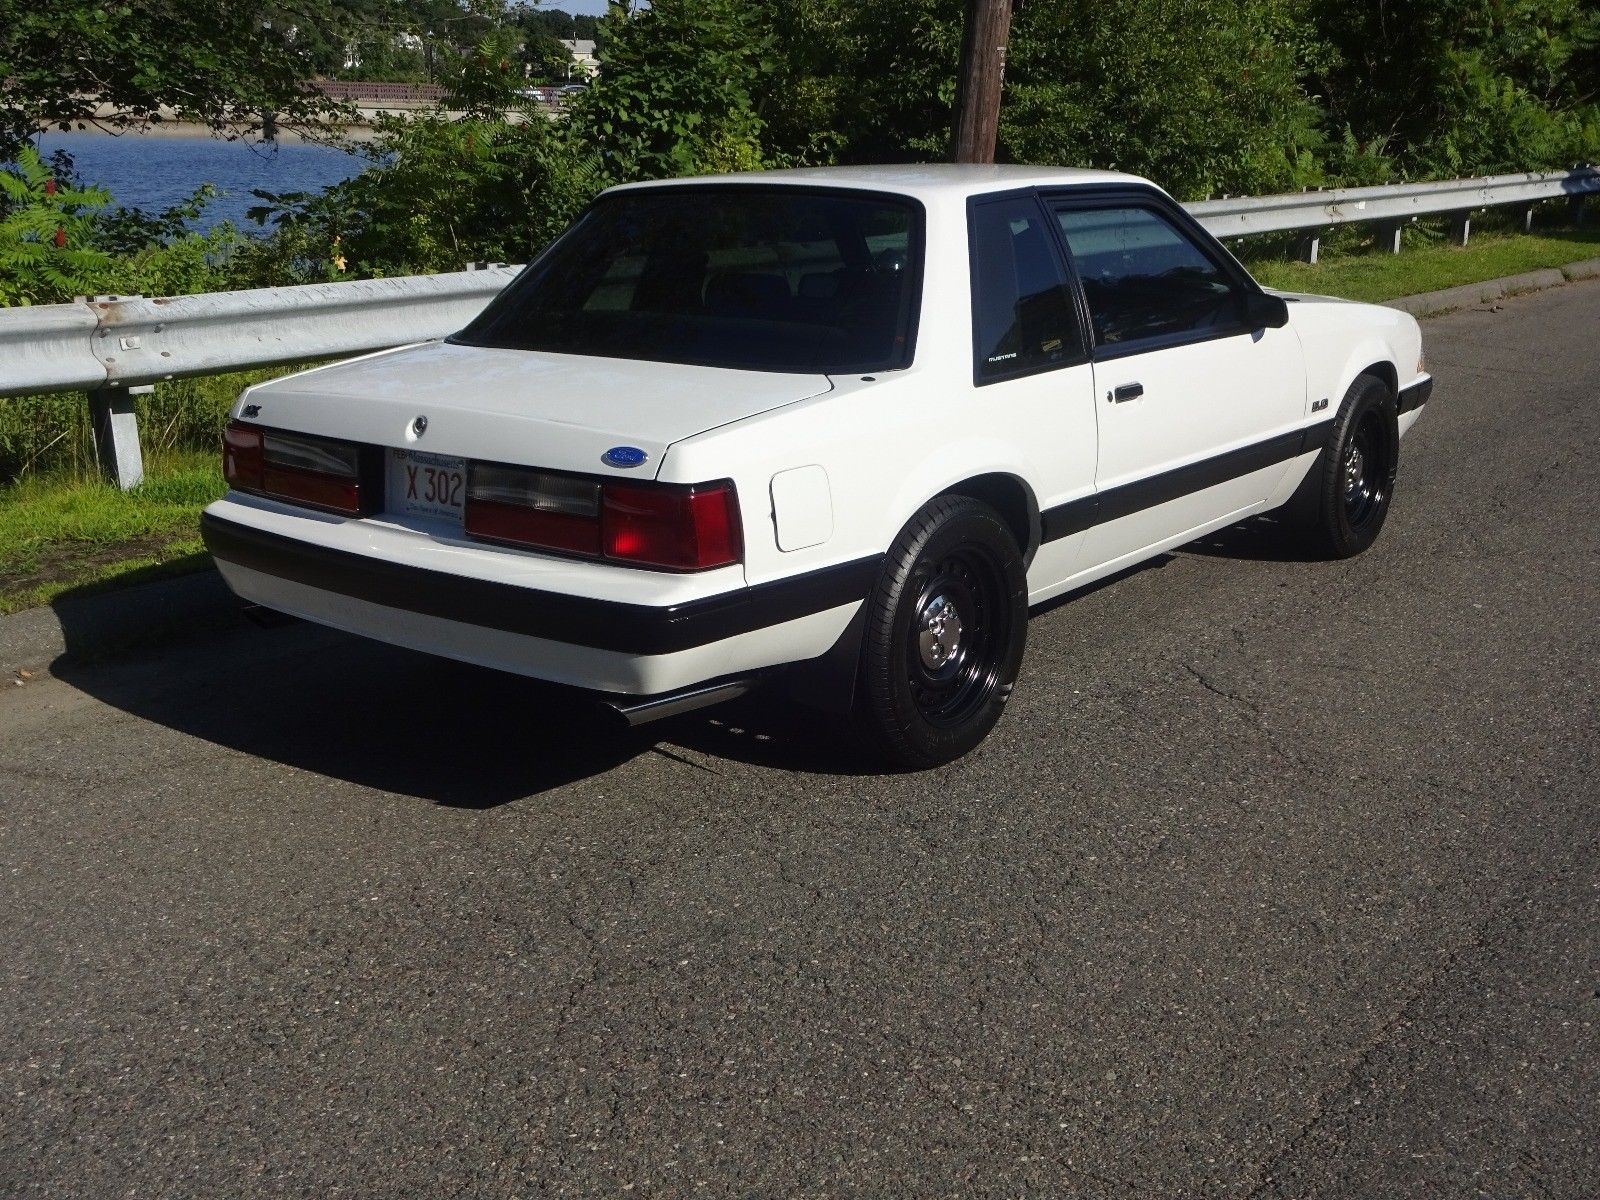 Cool Ford 2017: 1988 Ford Mustang LX 5.0 1988 Ford Mustang LX 5.0 ...